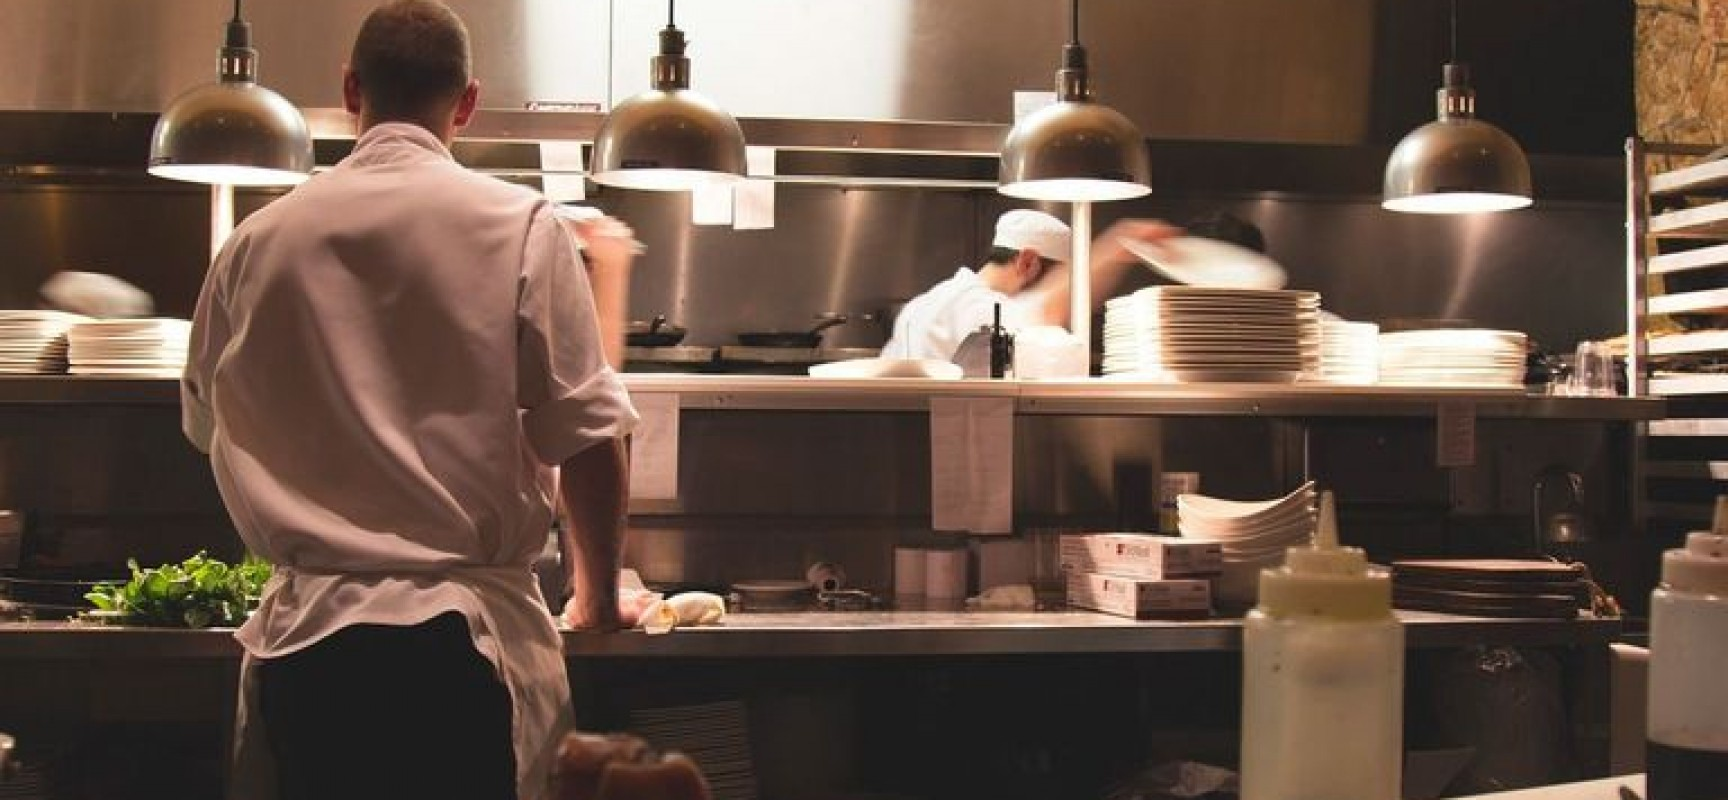 What You Need to Open Your Own Restaurant